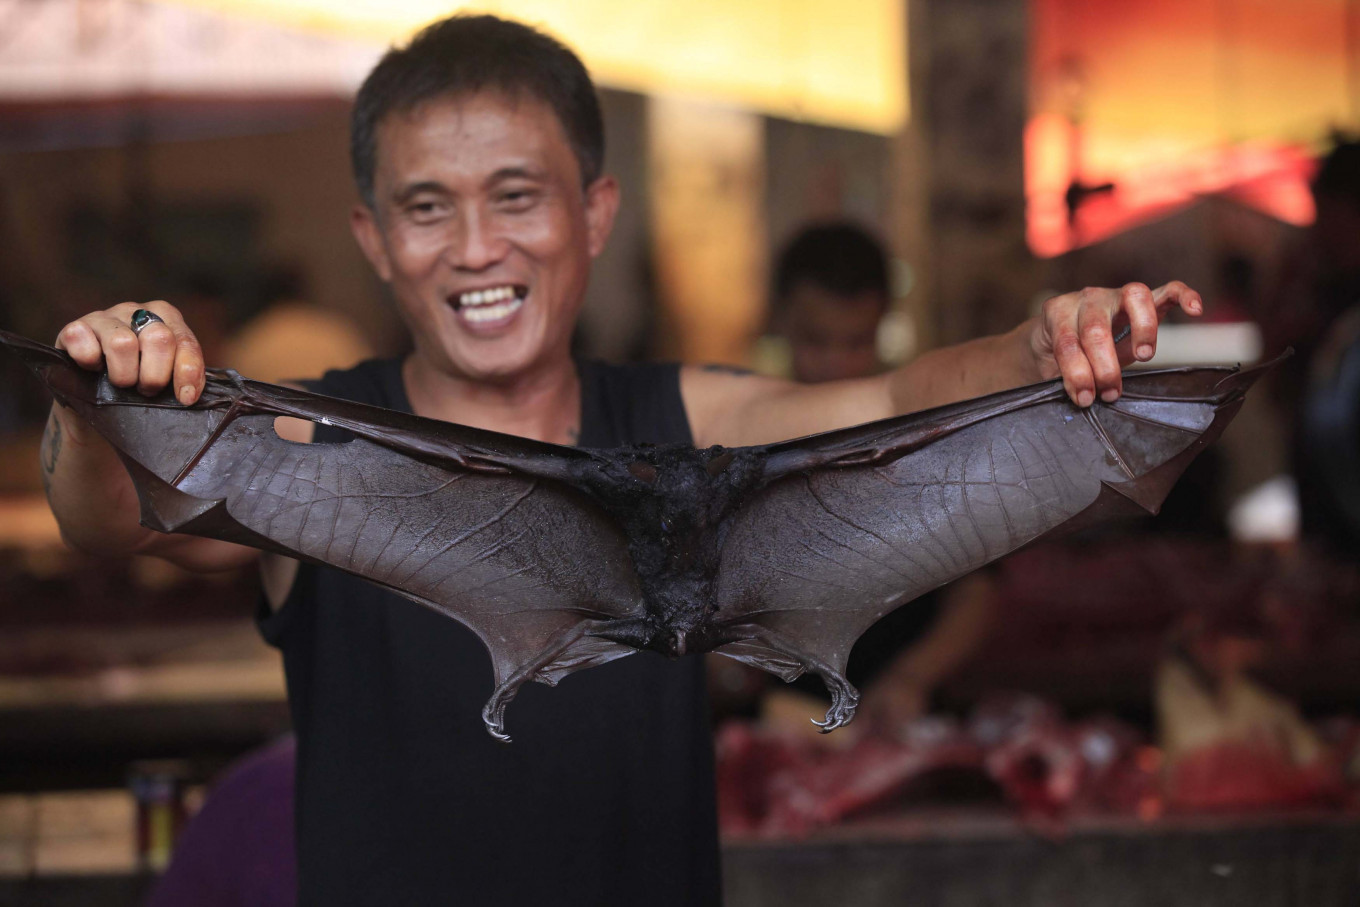 'Paniki' panic: Manado restaurants take bat stew off menu – for now